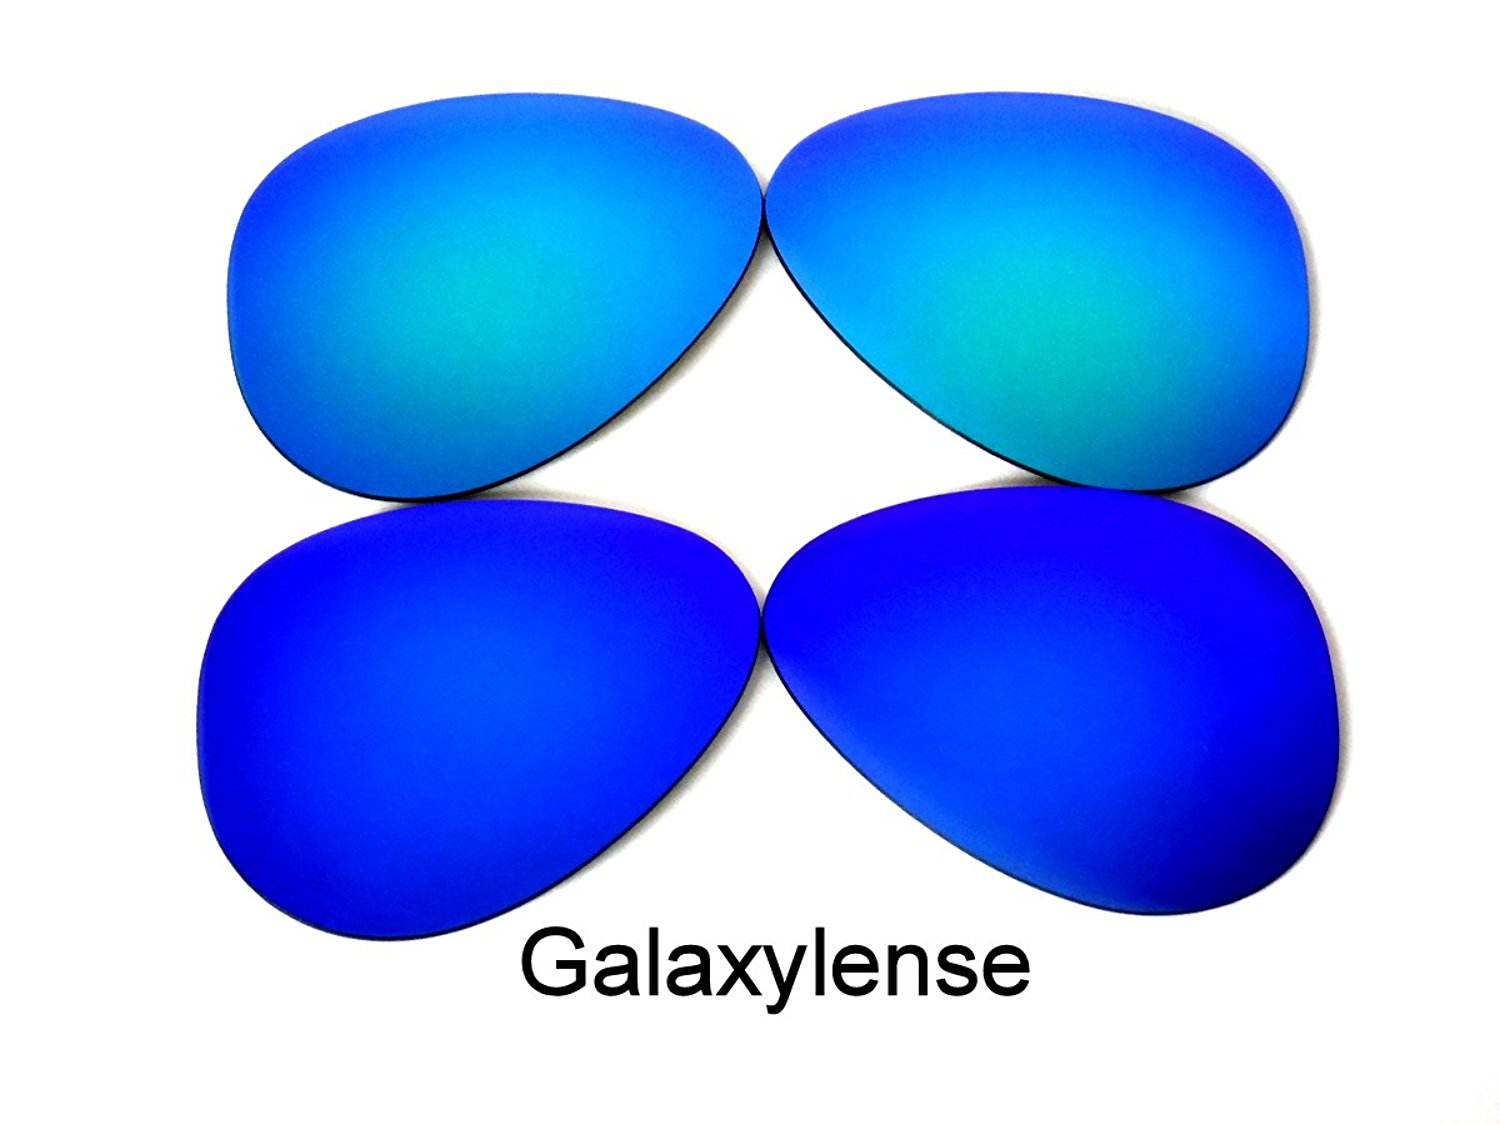 Buy Blue Green Polarized Replacement Lenses Ray-ban 2132 894 76 52mm ... 74e01a2af476